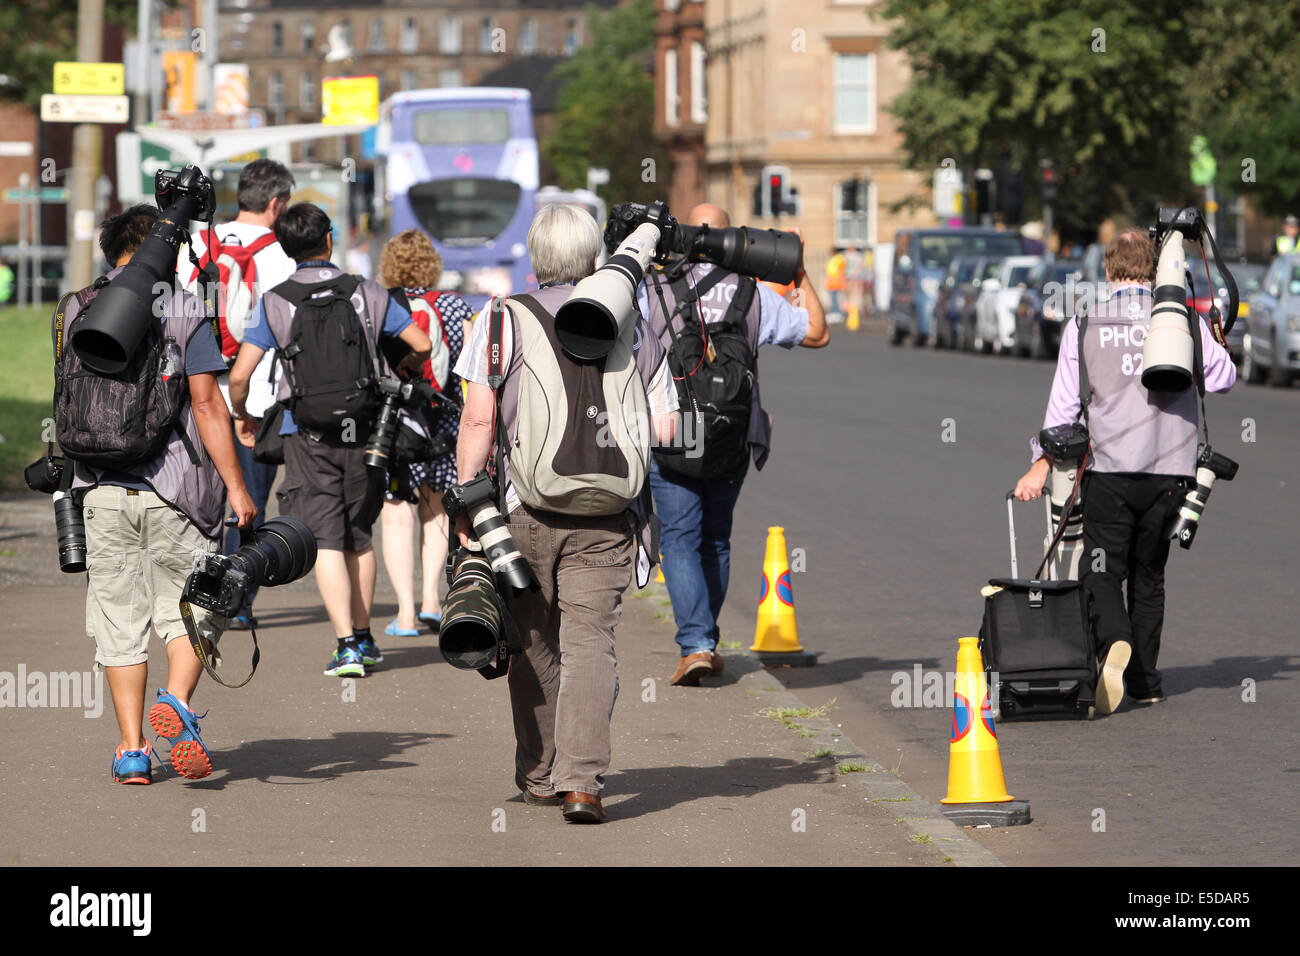 Glasgow Scotland 28 Jul 2014. Commonwealth Games day 5.  General scenes from around the venues as workers, athletes Stock Photo